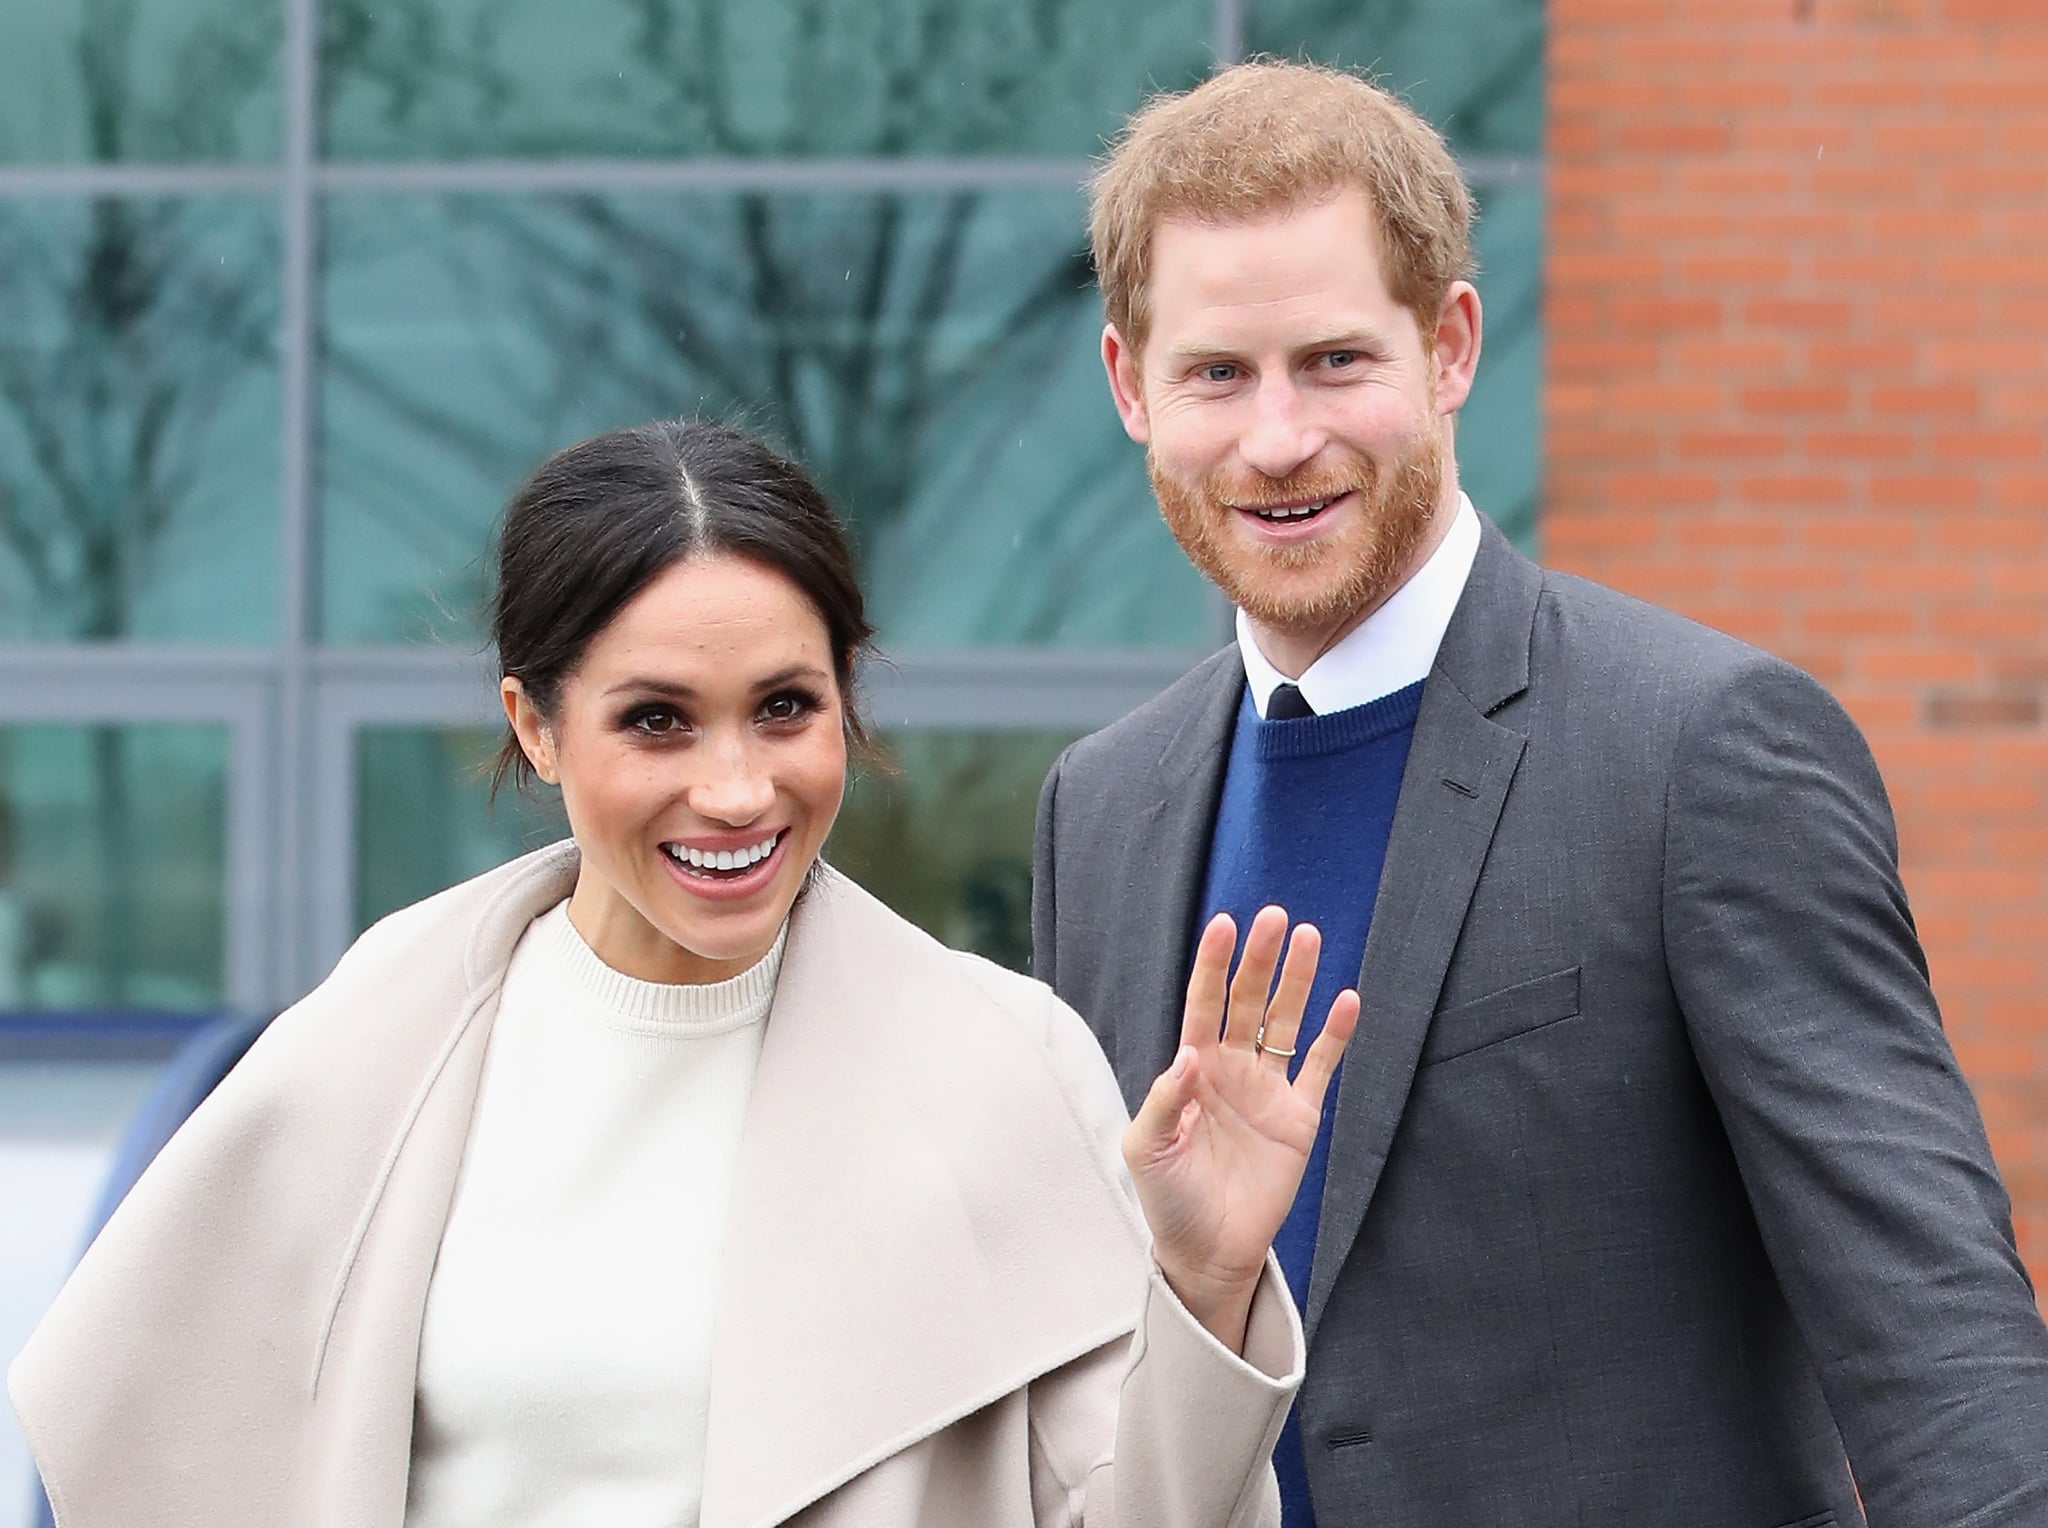 BELFAST, NORTHERN IRELAND - MARCH 23:  Prince Harry and Meghan Markle visit Catalyst Inc, a next generation science park, to meet young entrepreneurs and innovators on March 23, 2018 in Belfast, Nothern Ireland.  (Photo by Pool/Samir Hussein/WireImage)